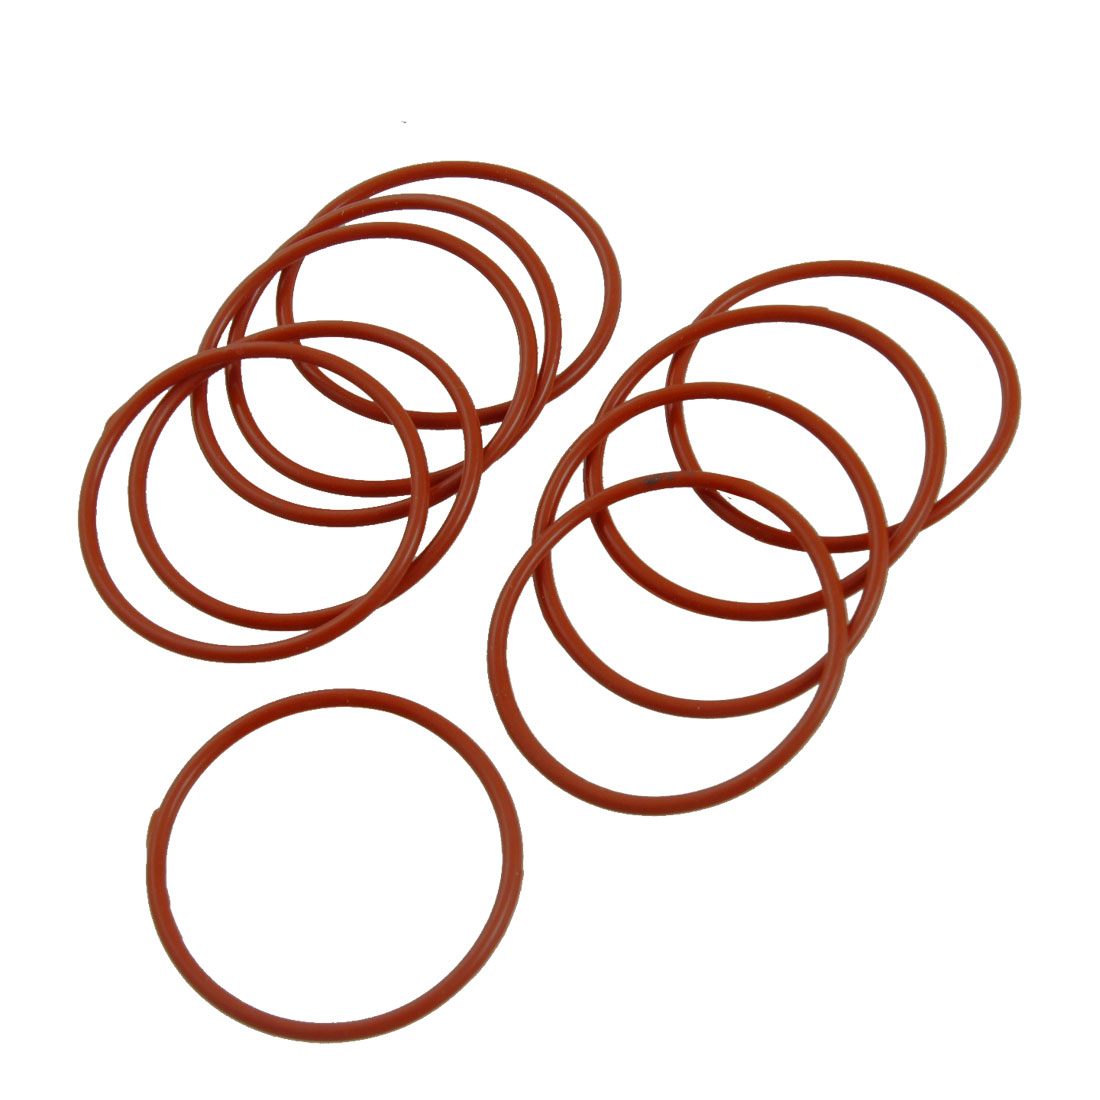 40mm x 36m x 2mm Red Silicone O Ring Oil Seals 10 pcs